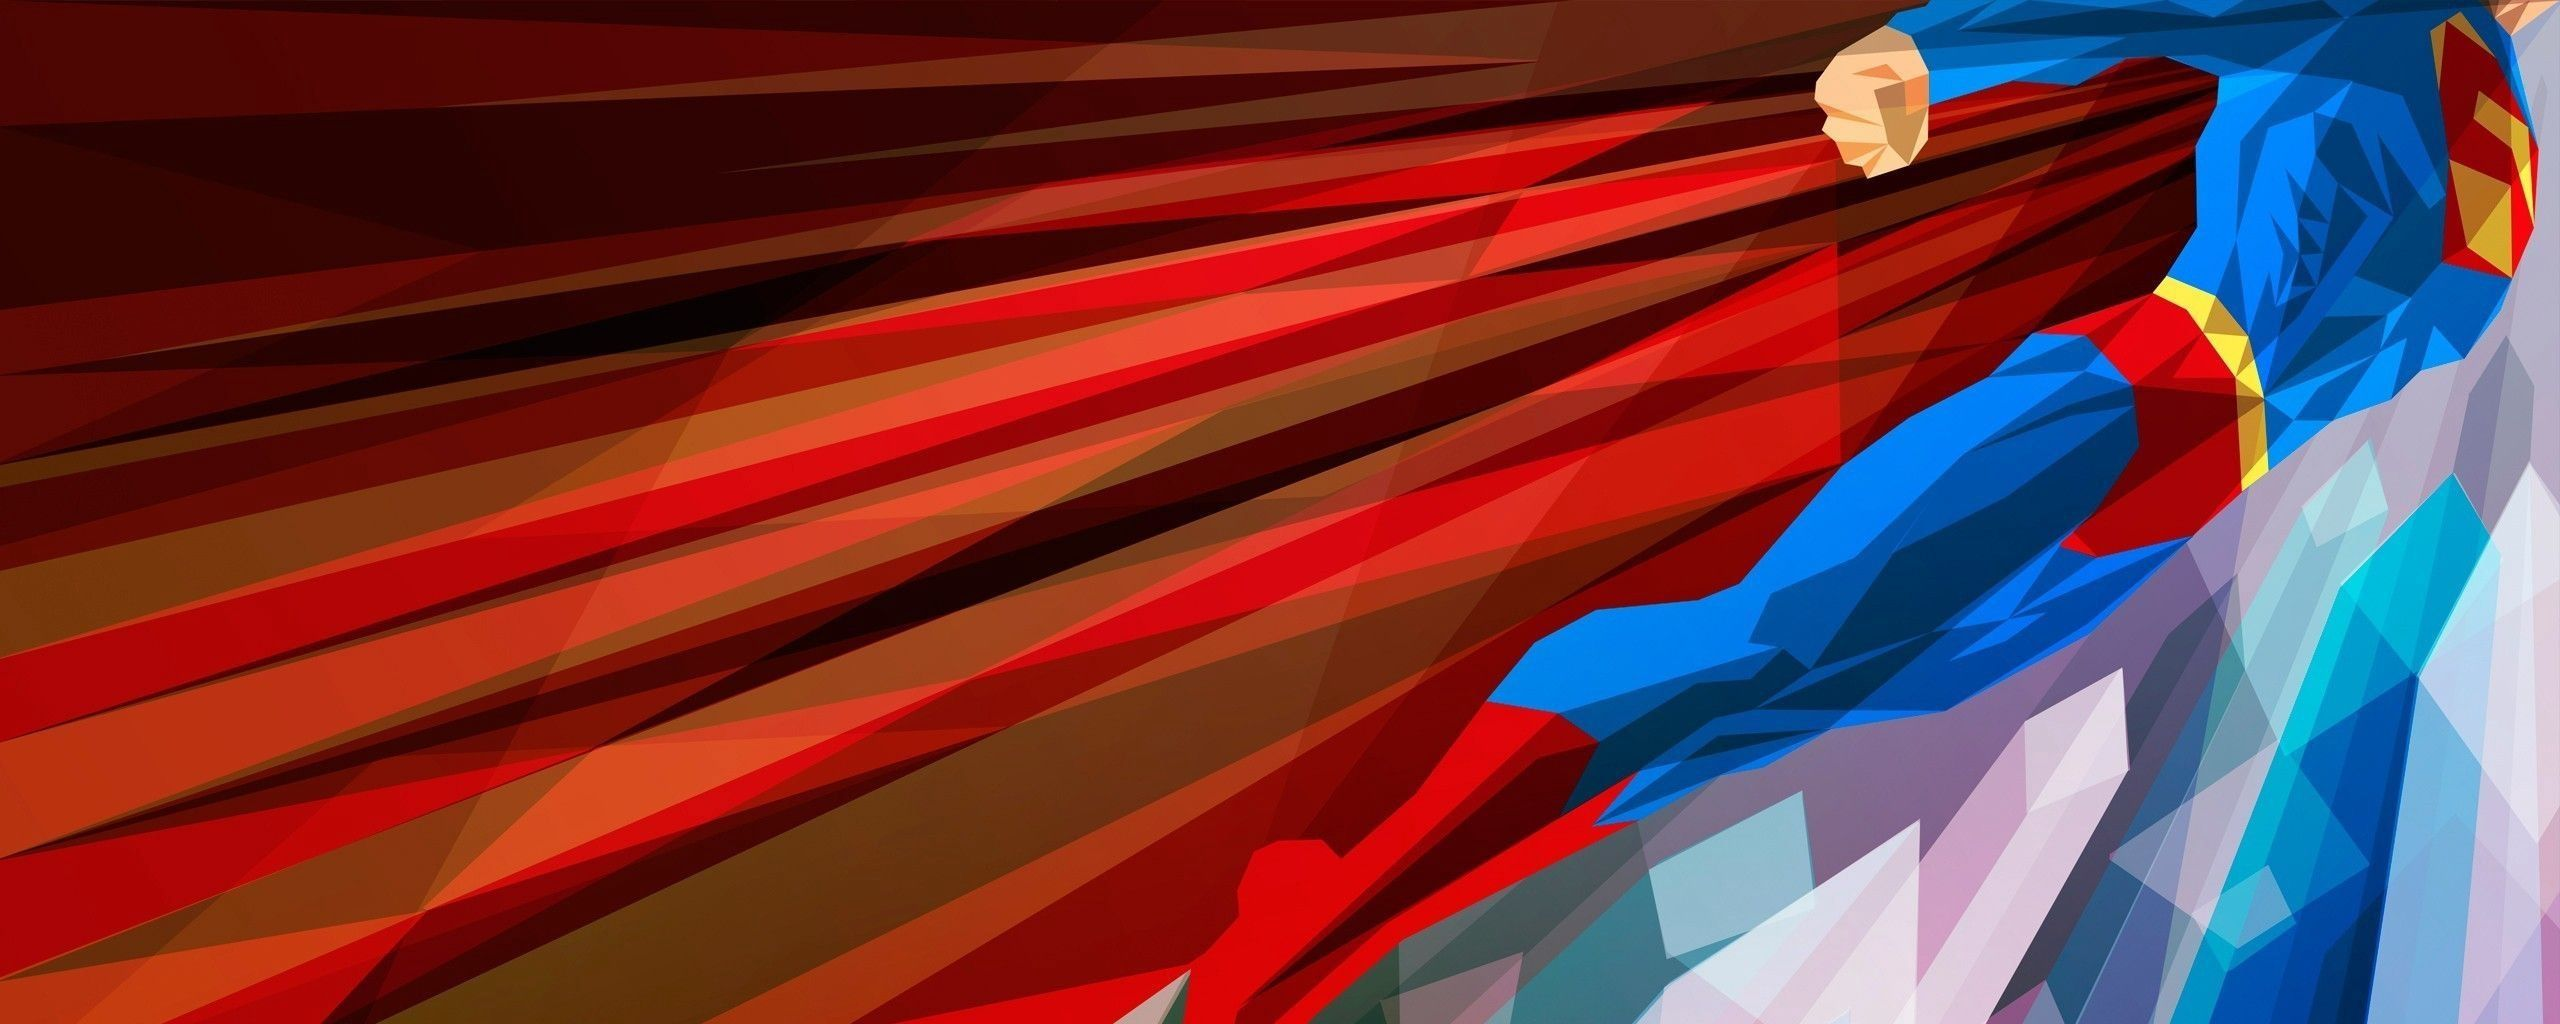 2560x1024 cool superman wallpaper doble screen - 28 images - some new ...